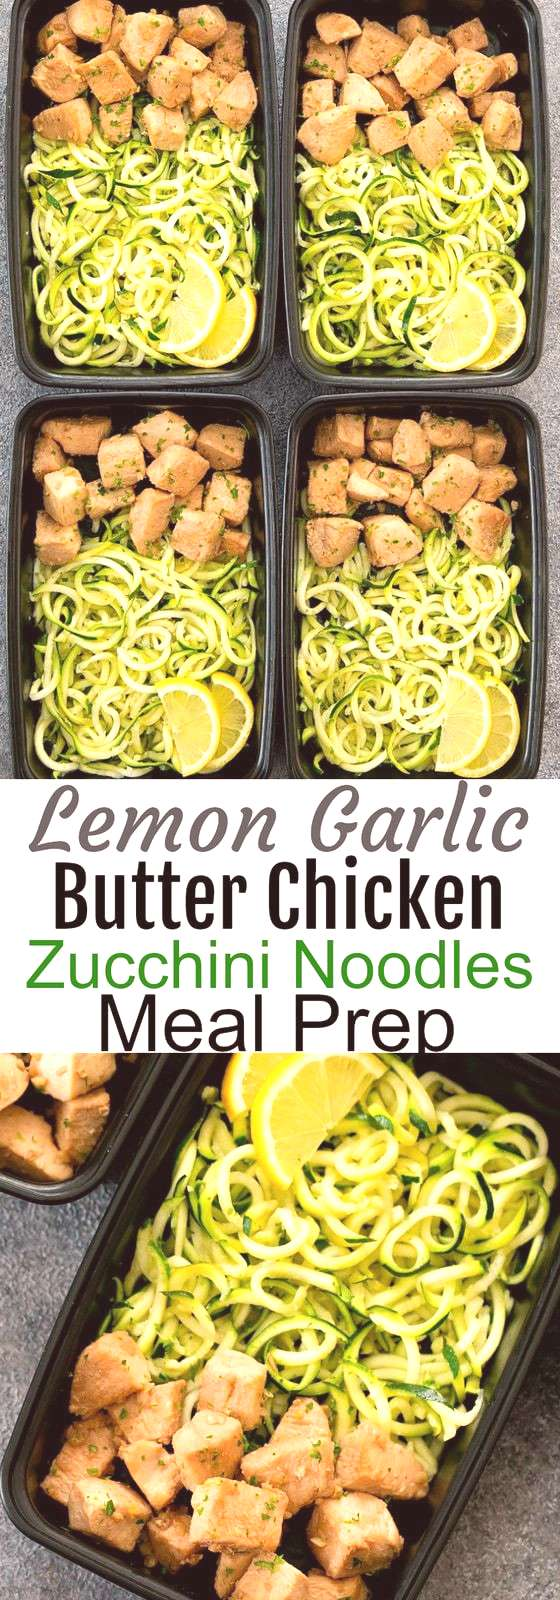 Lemon Garlic Butter Chicken with Zucchini Noodles Meal Prep. This is an easy and flavorful meal pre